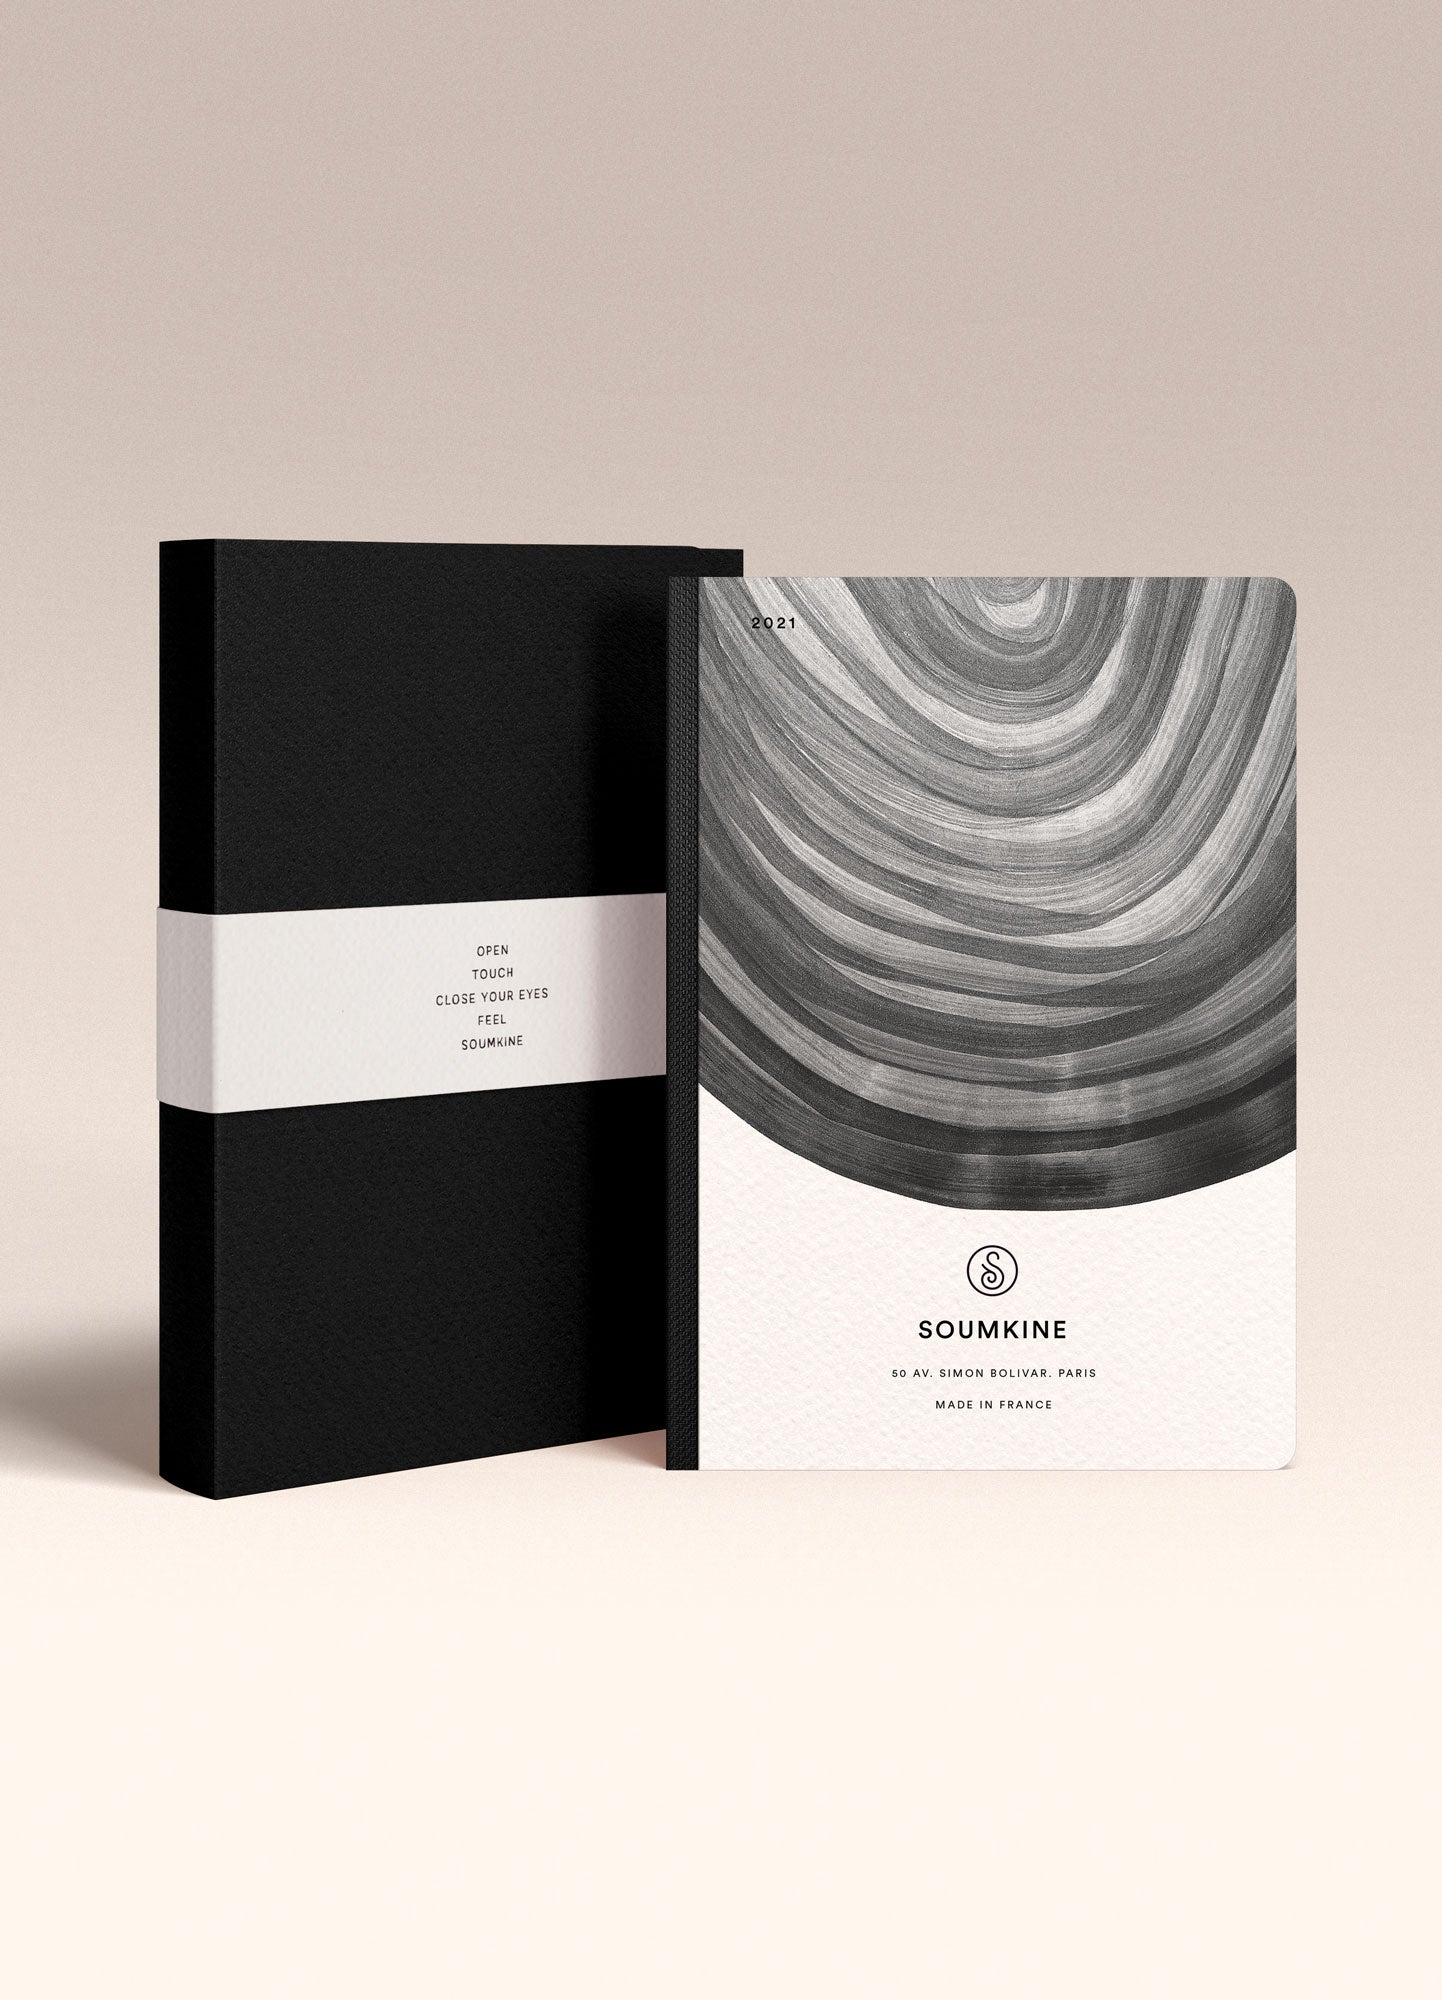 """Untitled 07"" by Anna Chask. 2021 Weekly planner A5 Size. 100% Cotton Paper"